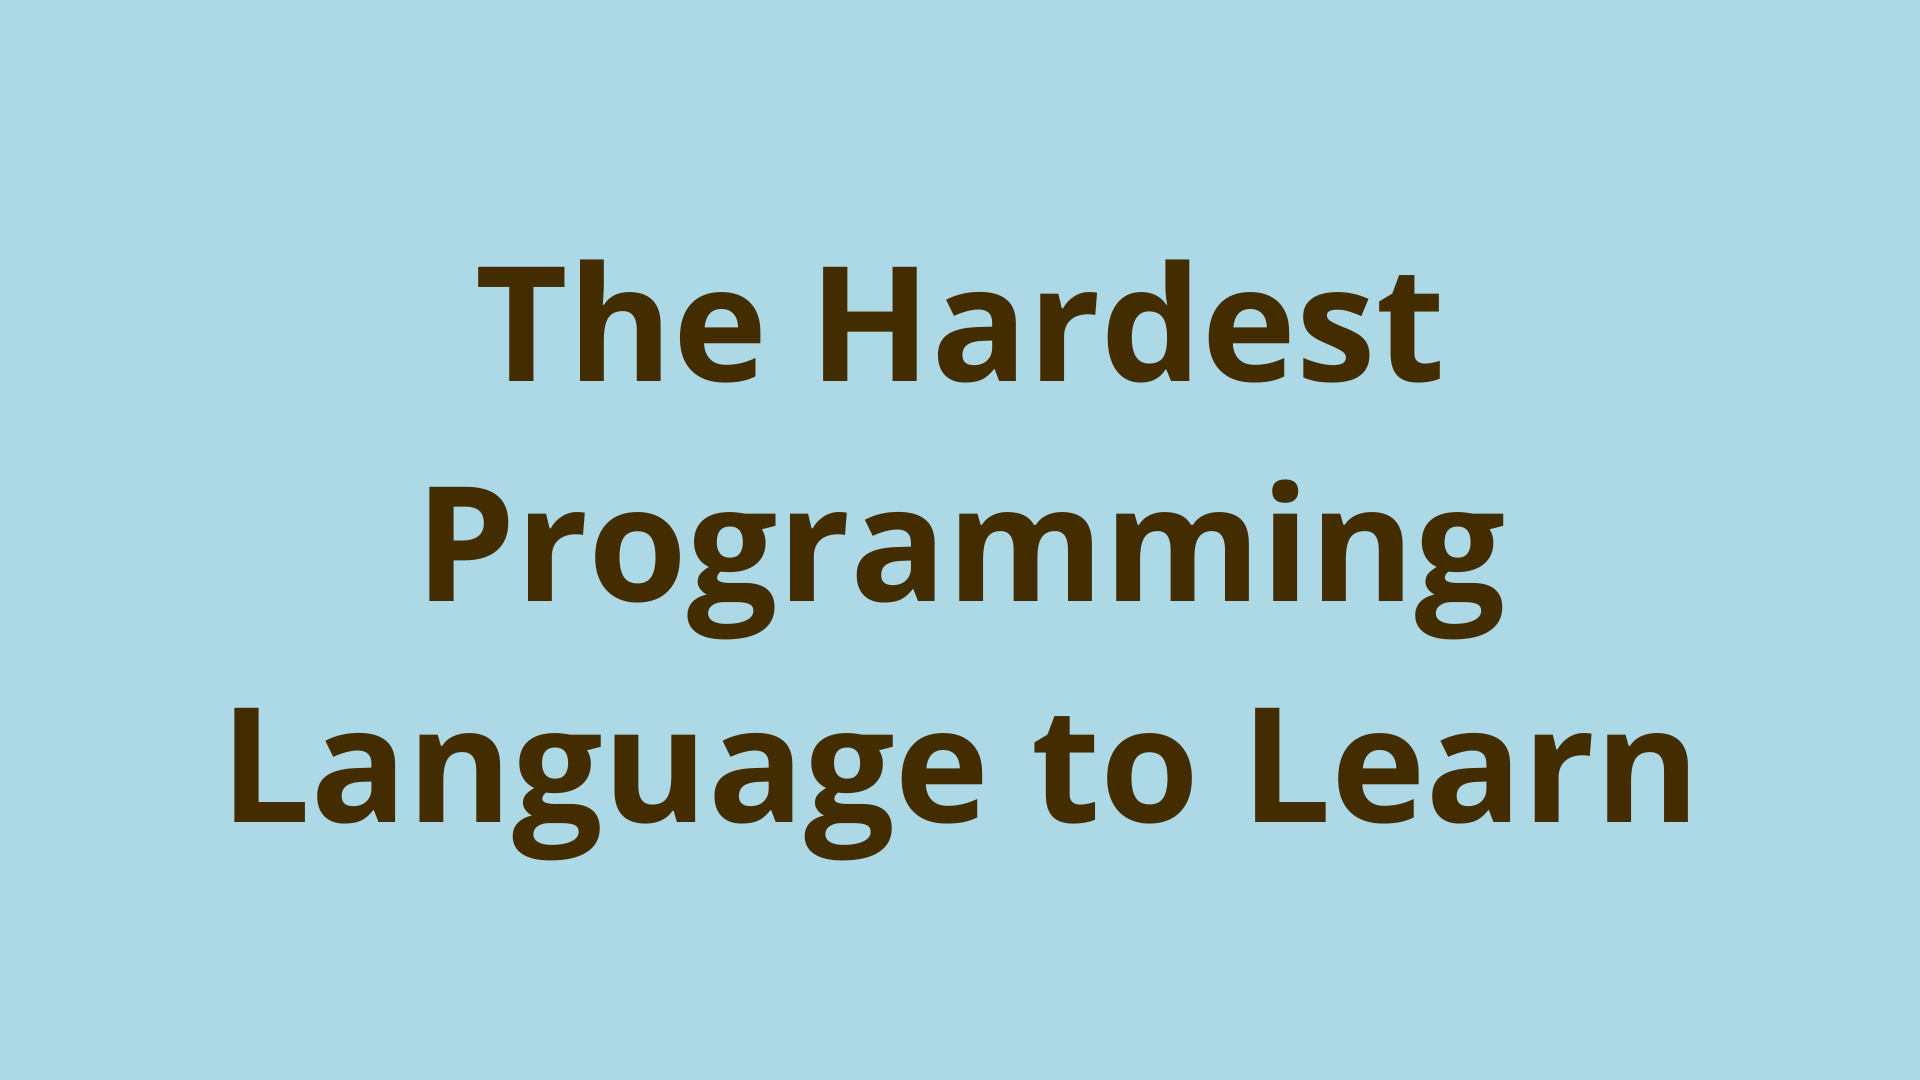 Image of What is the hardest programming language to learn?